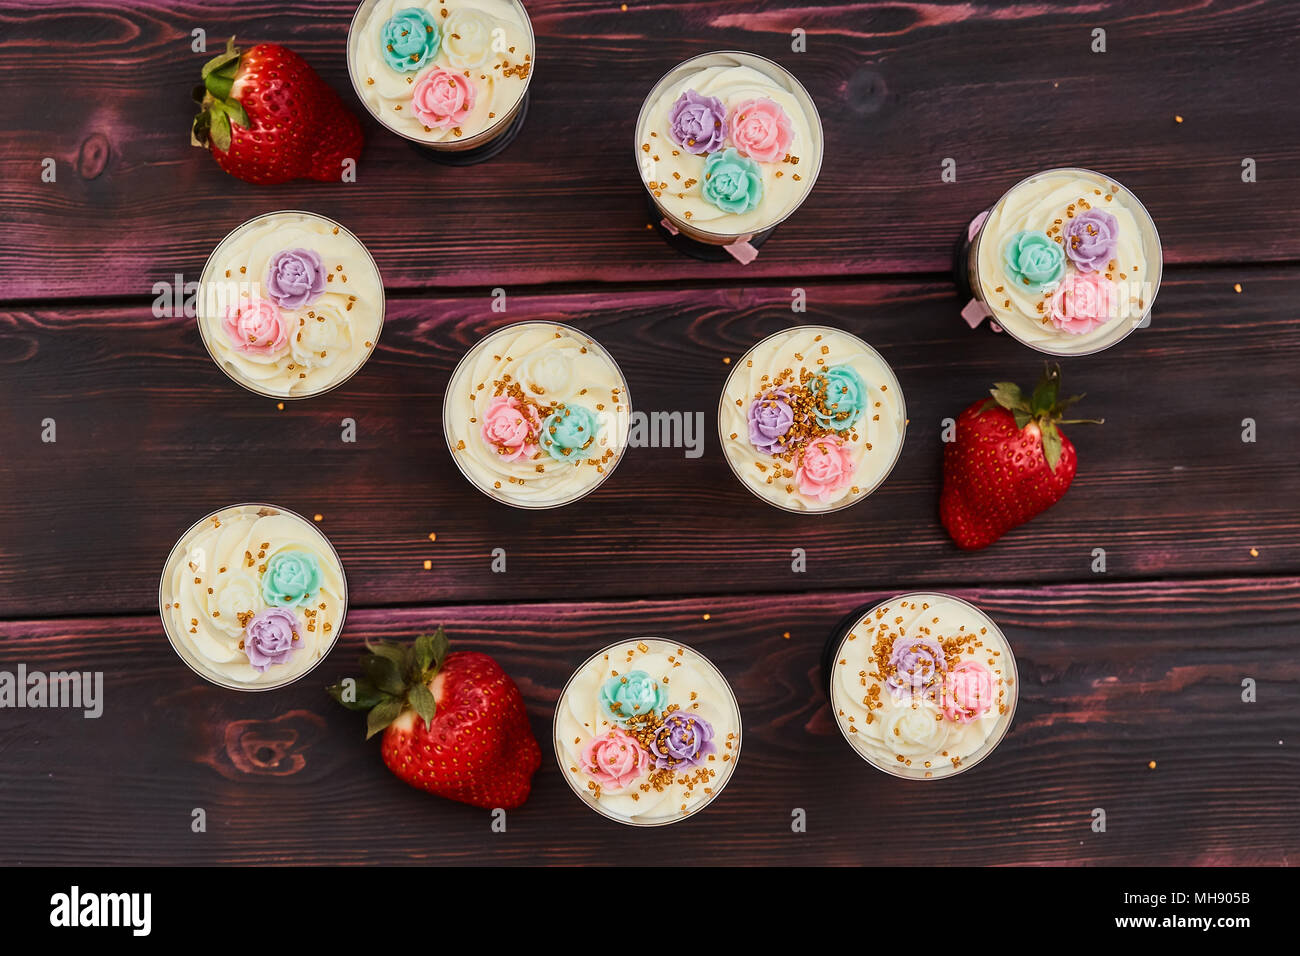 Cake with strawberry served in glass shots, wooden background - Stock Image